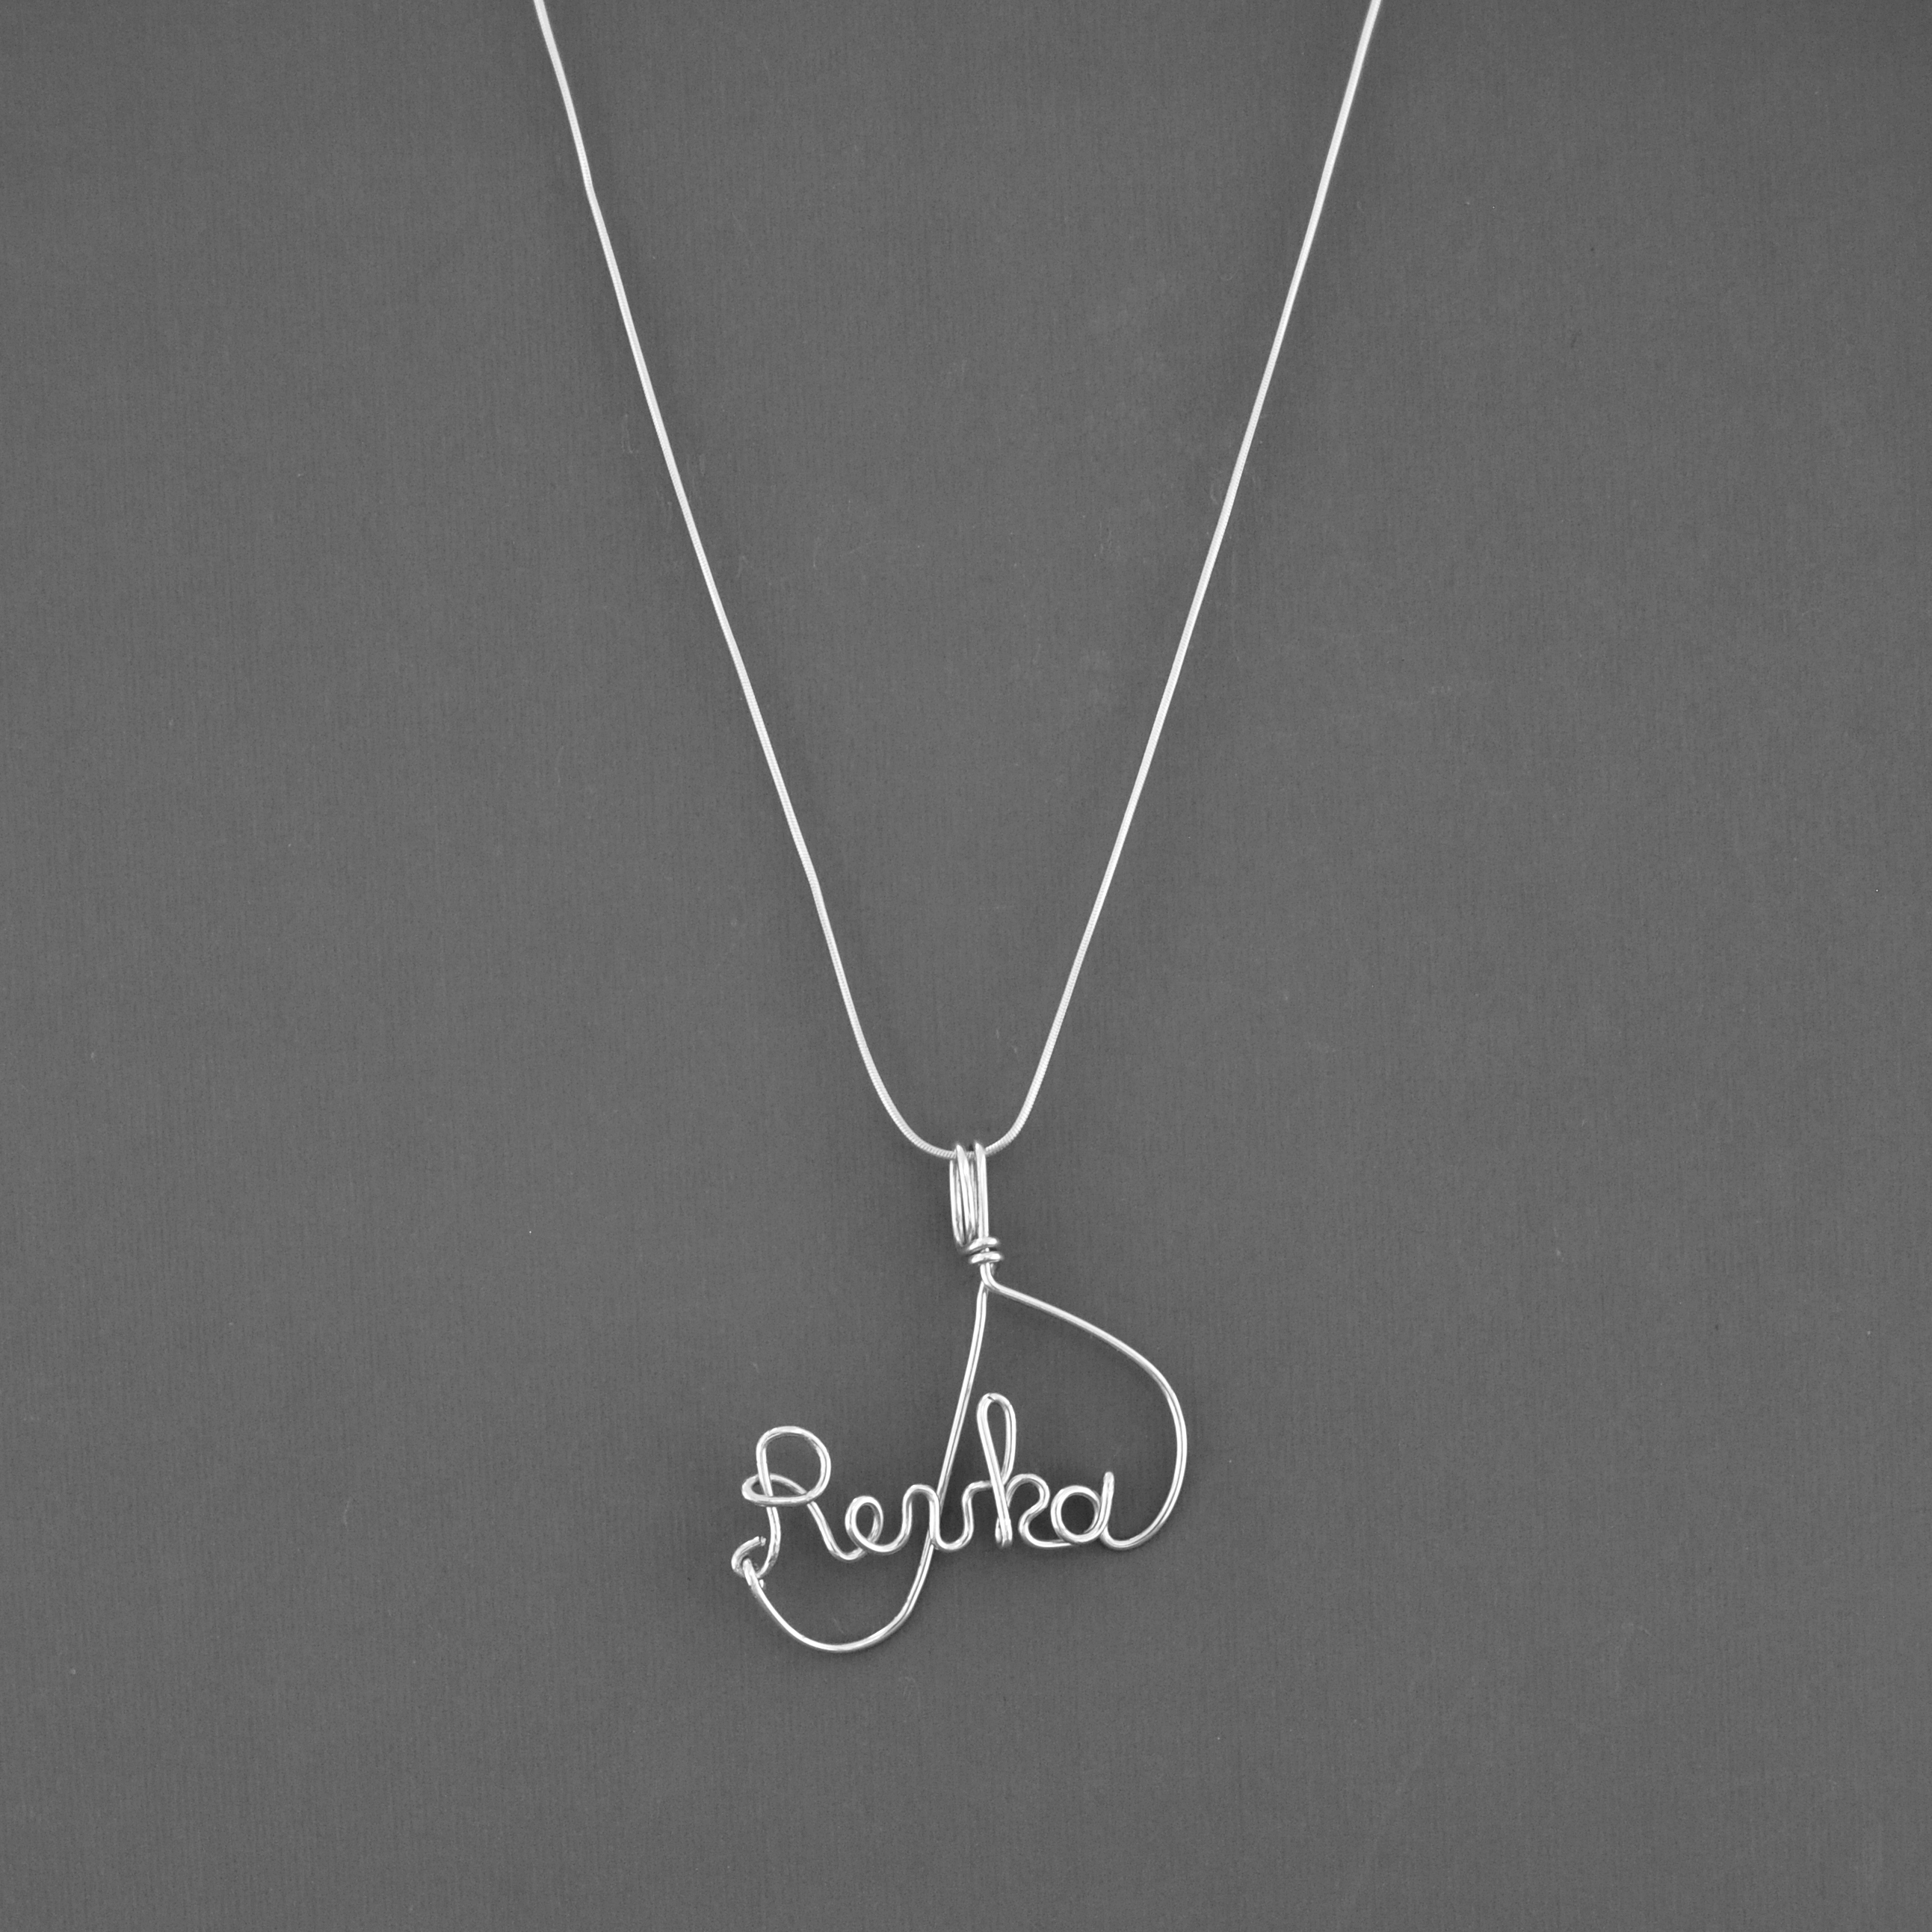 script hollywood zoom larger roll drag jewellery over gold necklace sterling name to personalized image